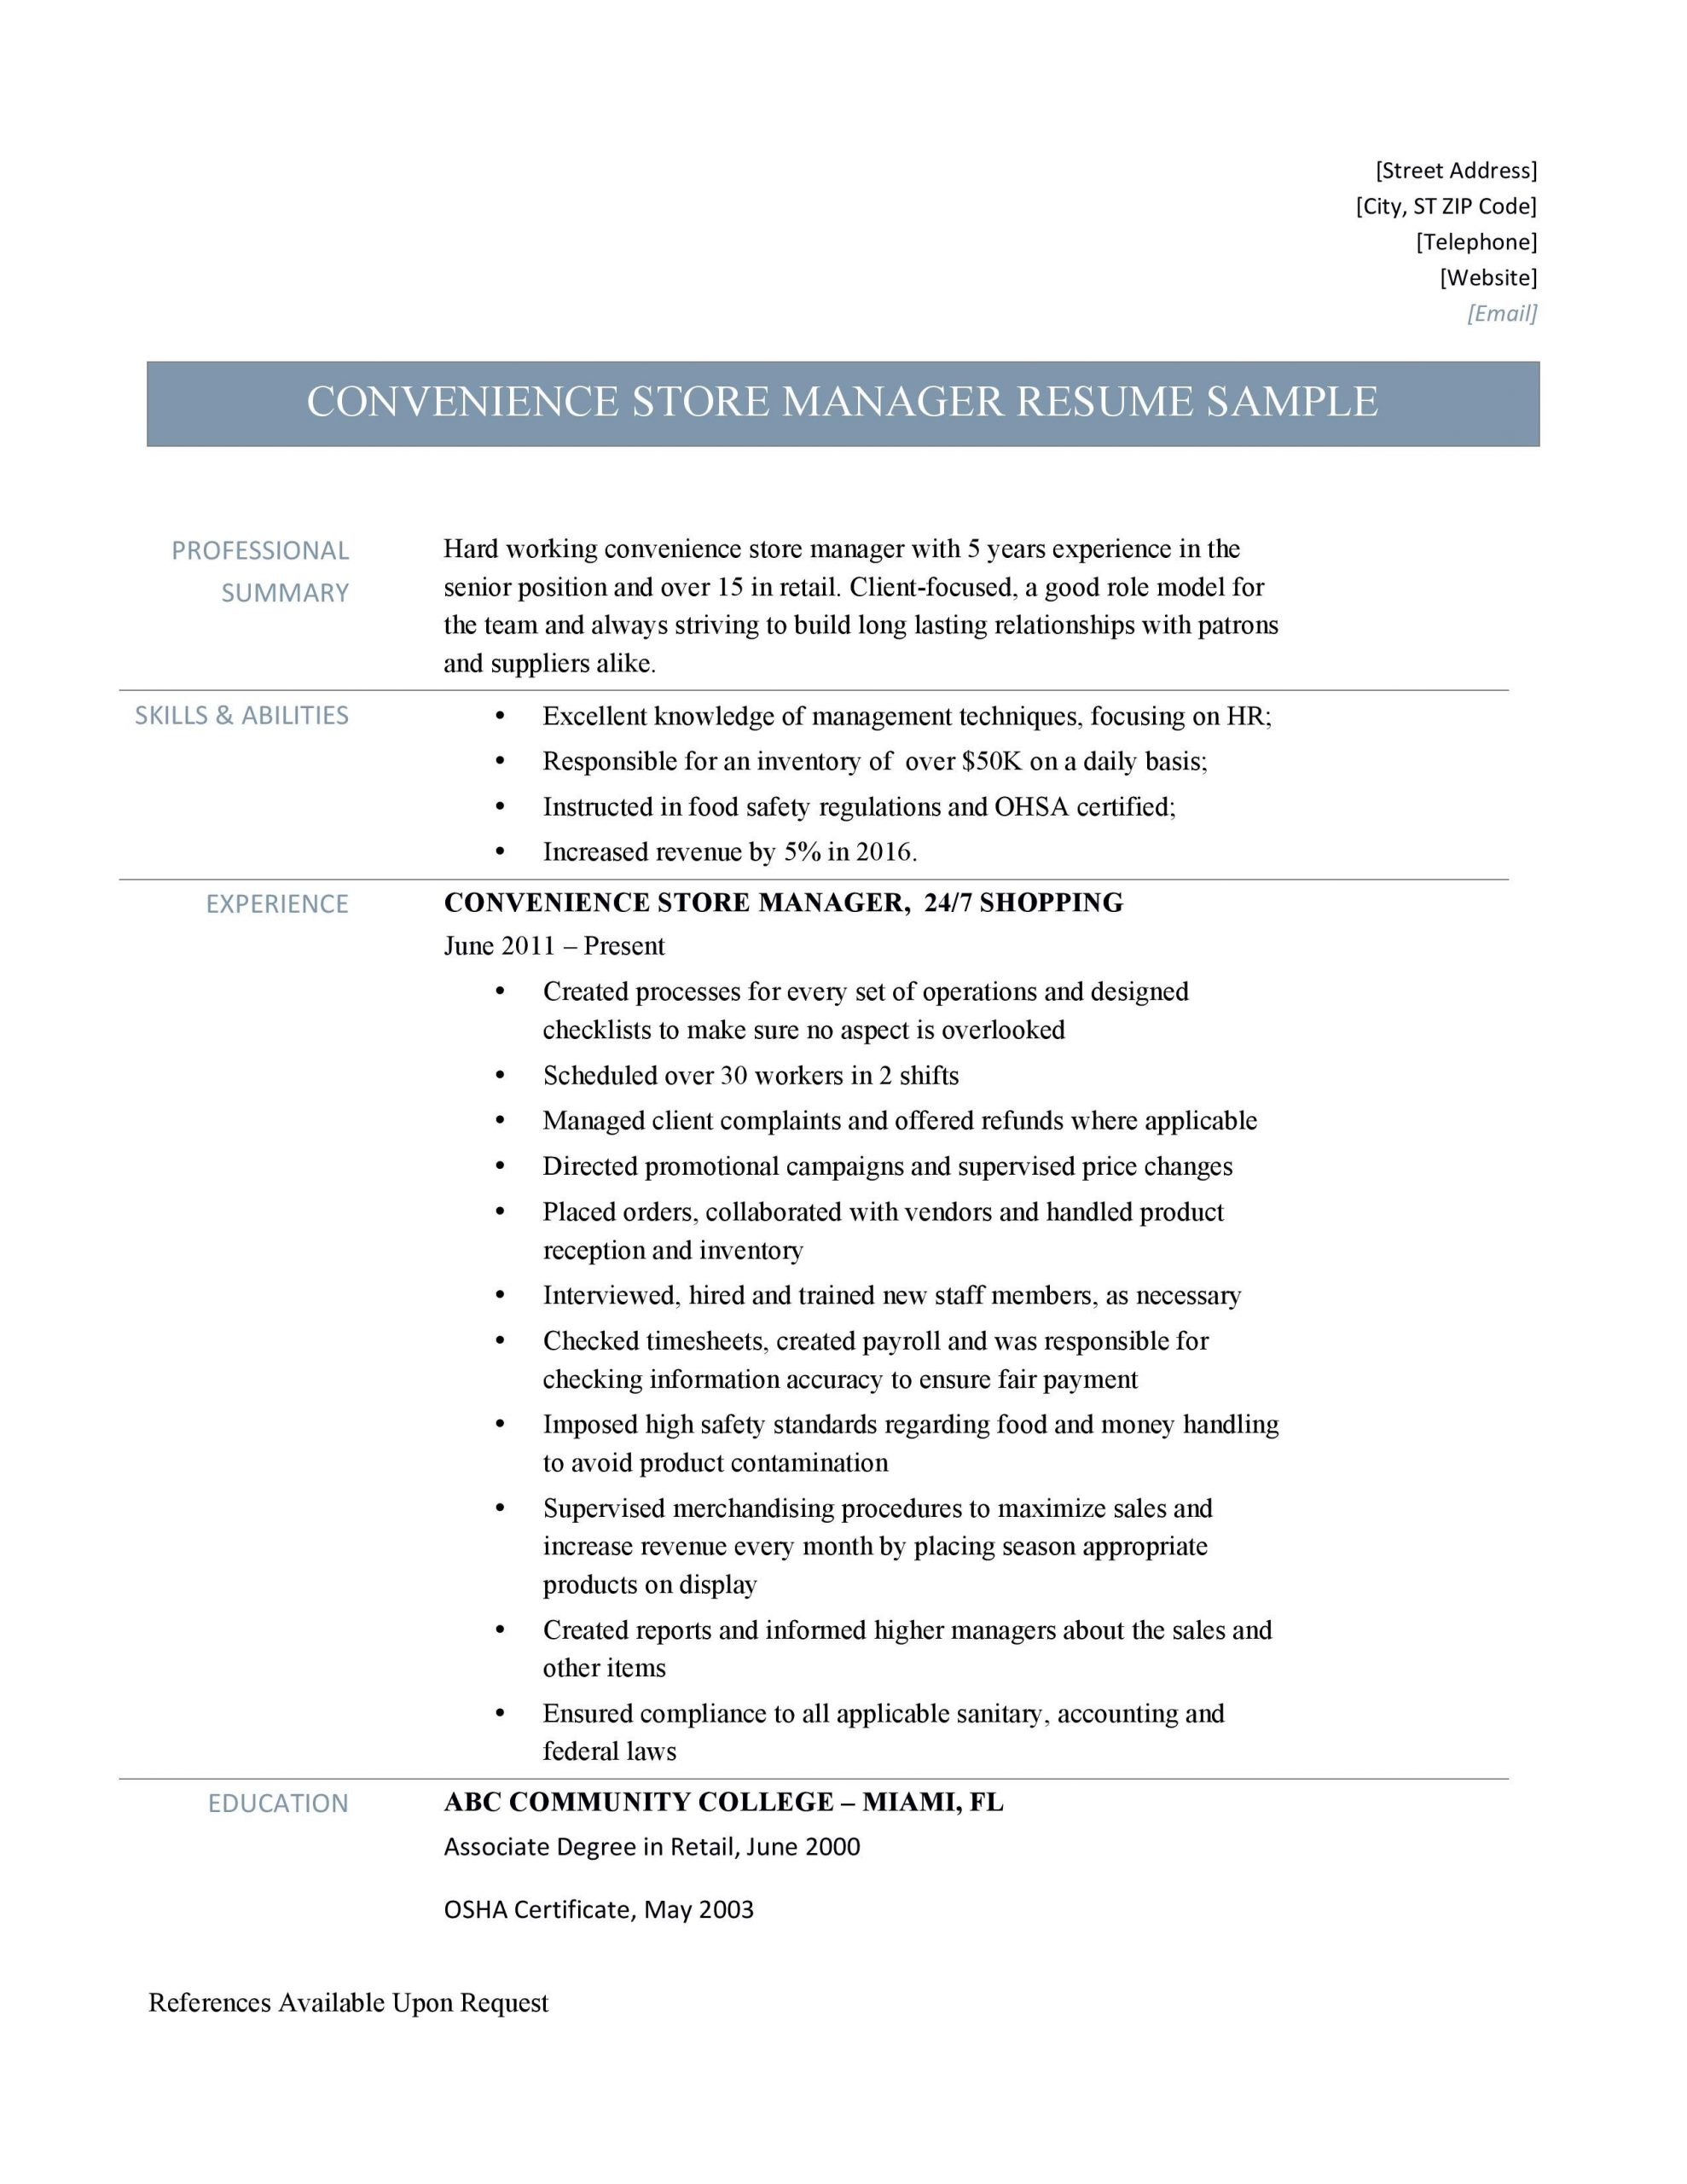 Convenience Store Manager Resume Convenience Store Manager Resume Samples